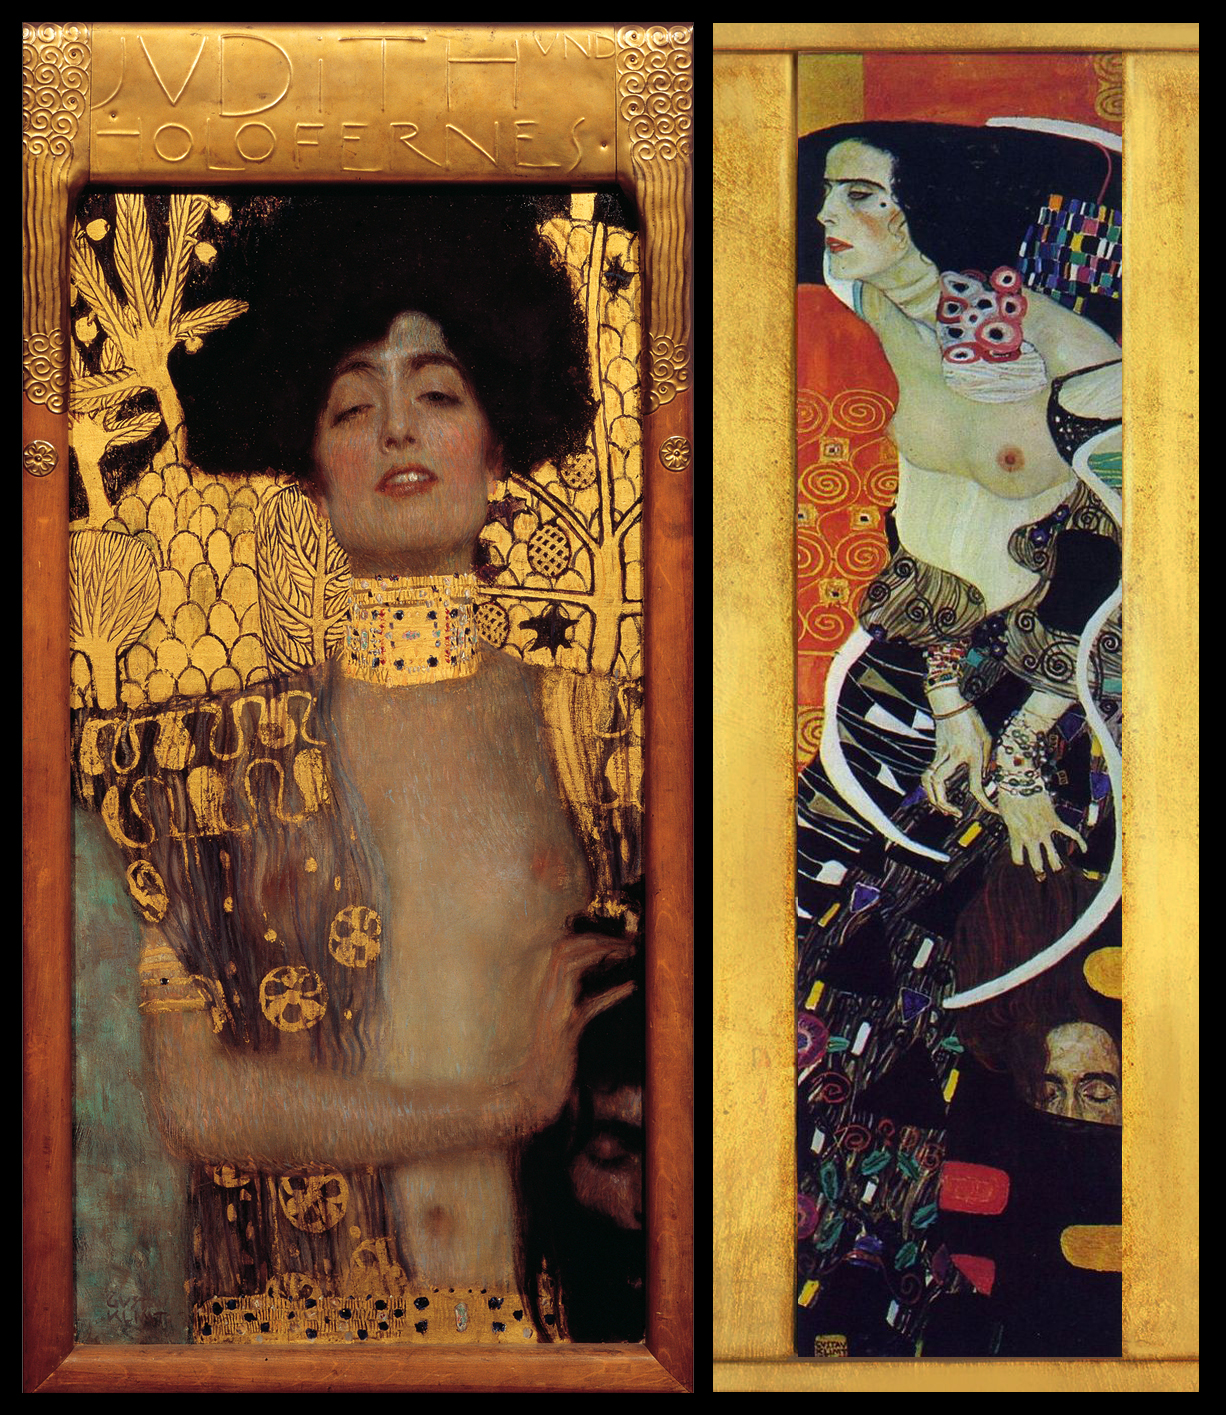 Beautiful Judith Ii Klimt Photos - Joshkrajcik.us - joshkrajcik.us